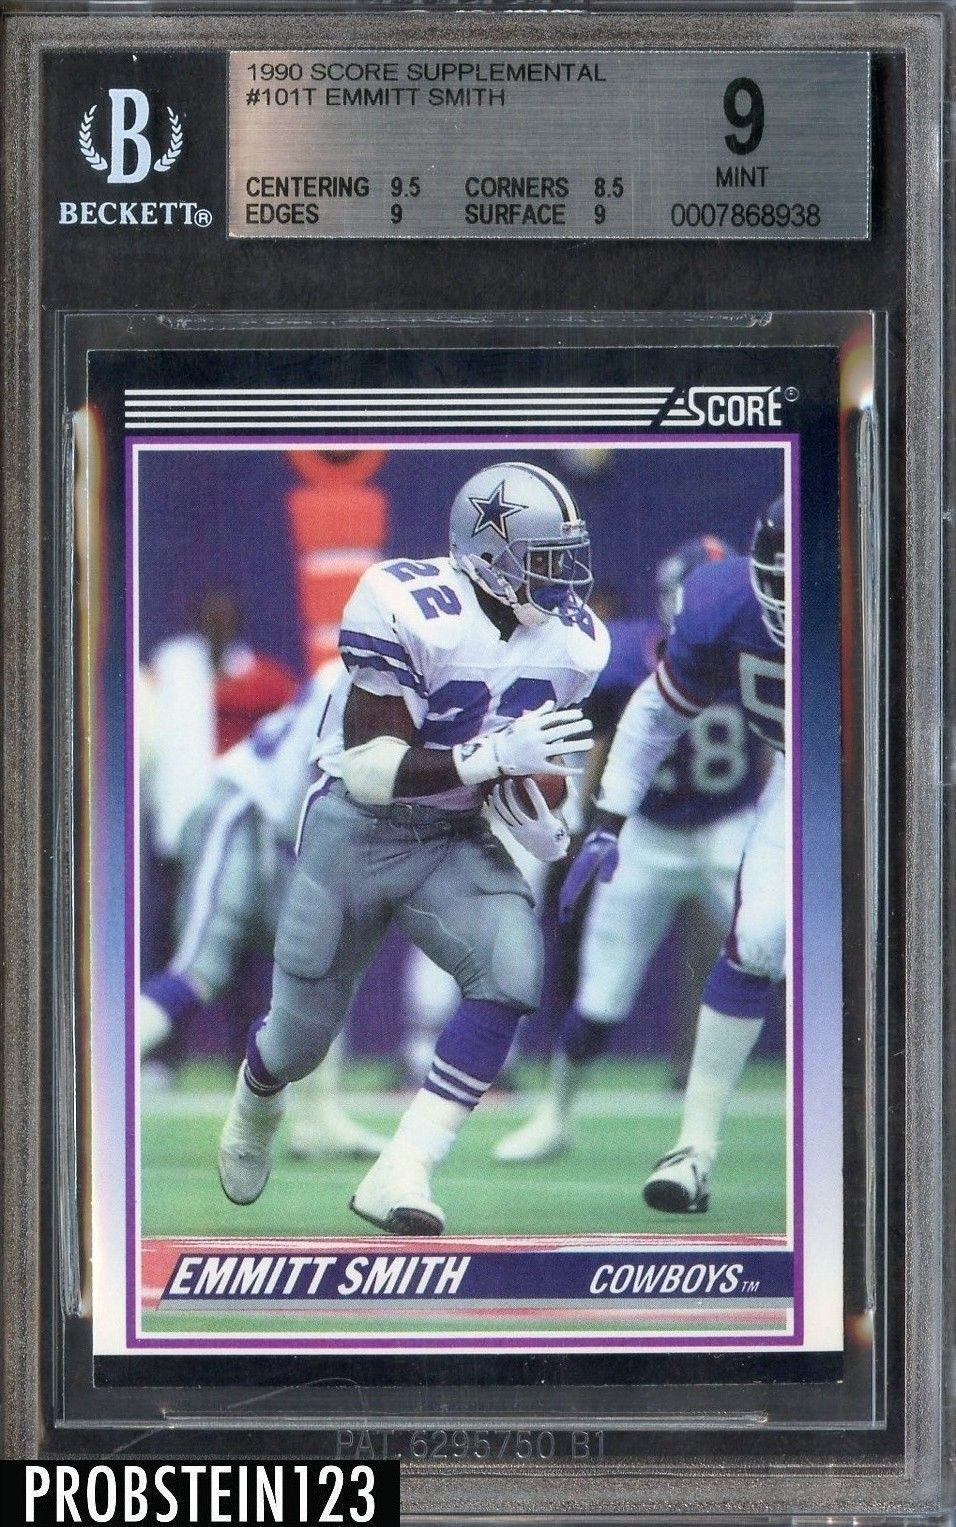 1990 score supplemental with images football cards